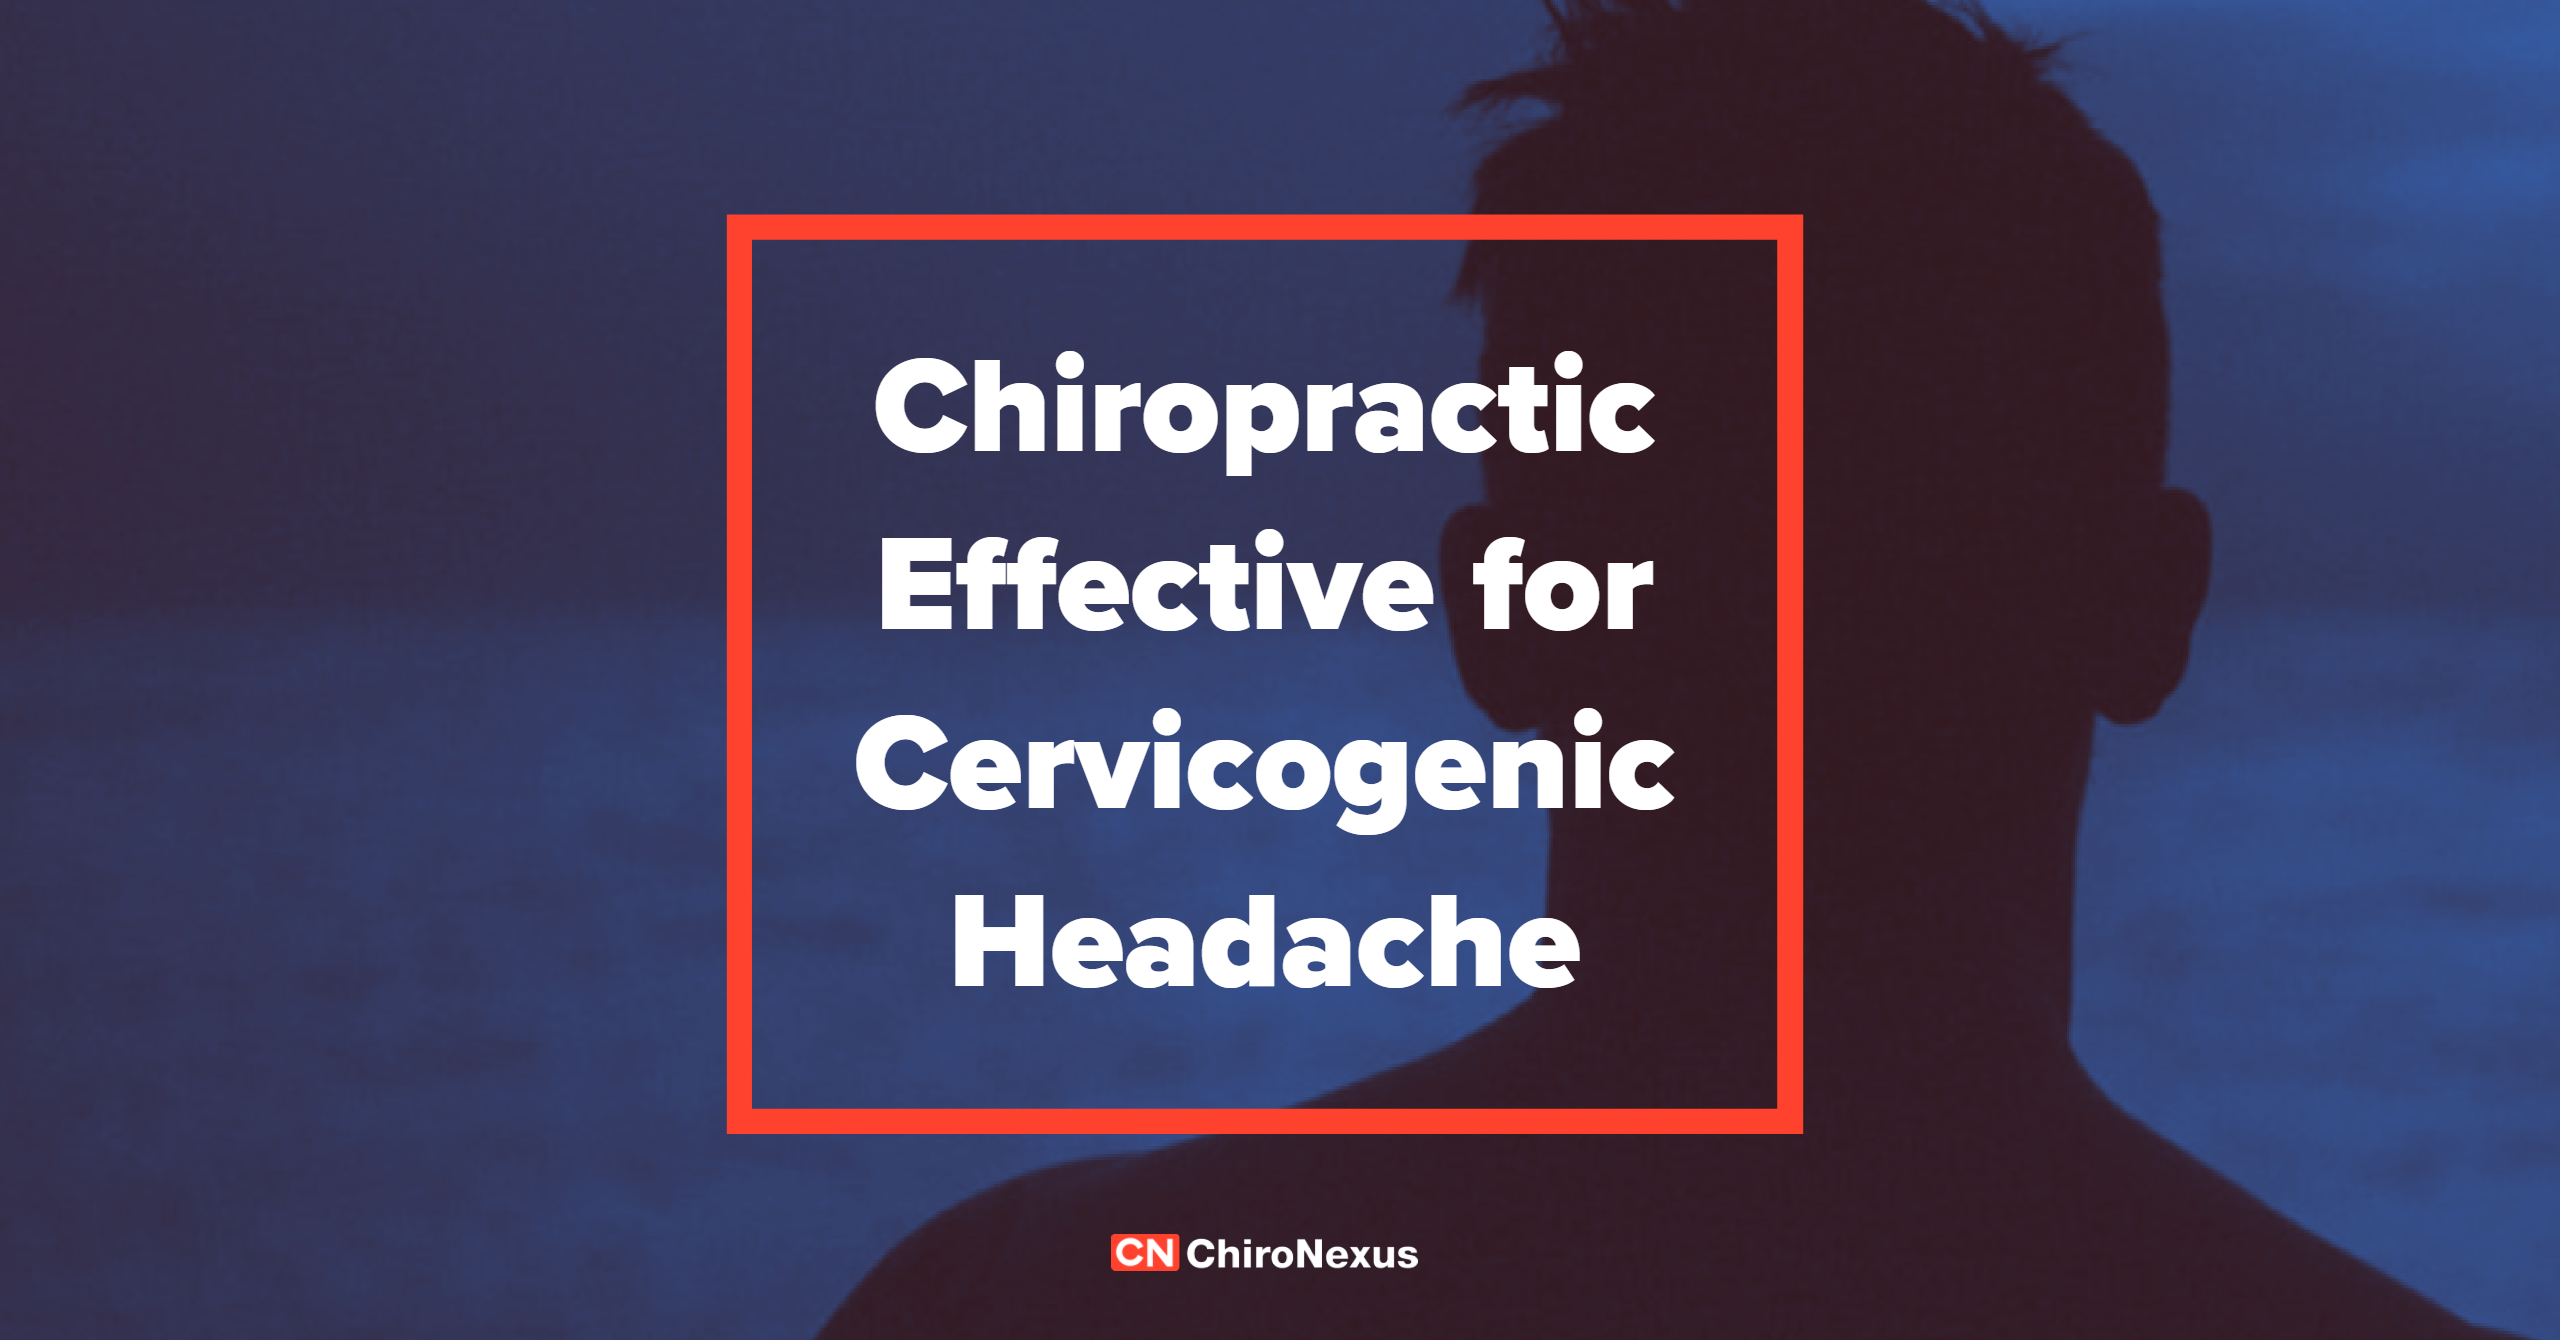 Chiropractic Effective for Cervicogenic Headache